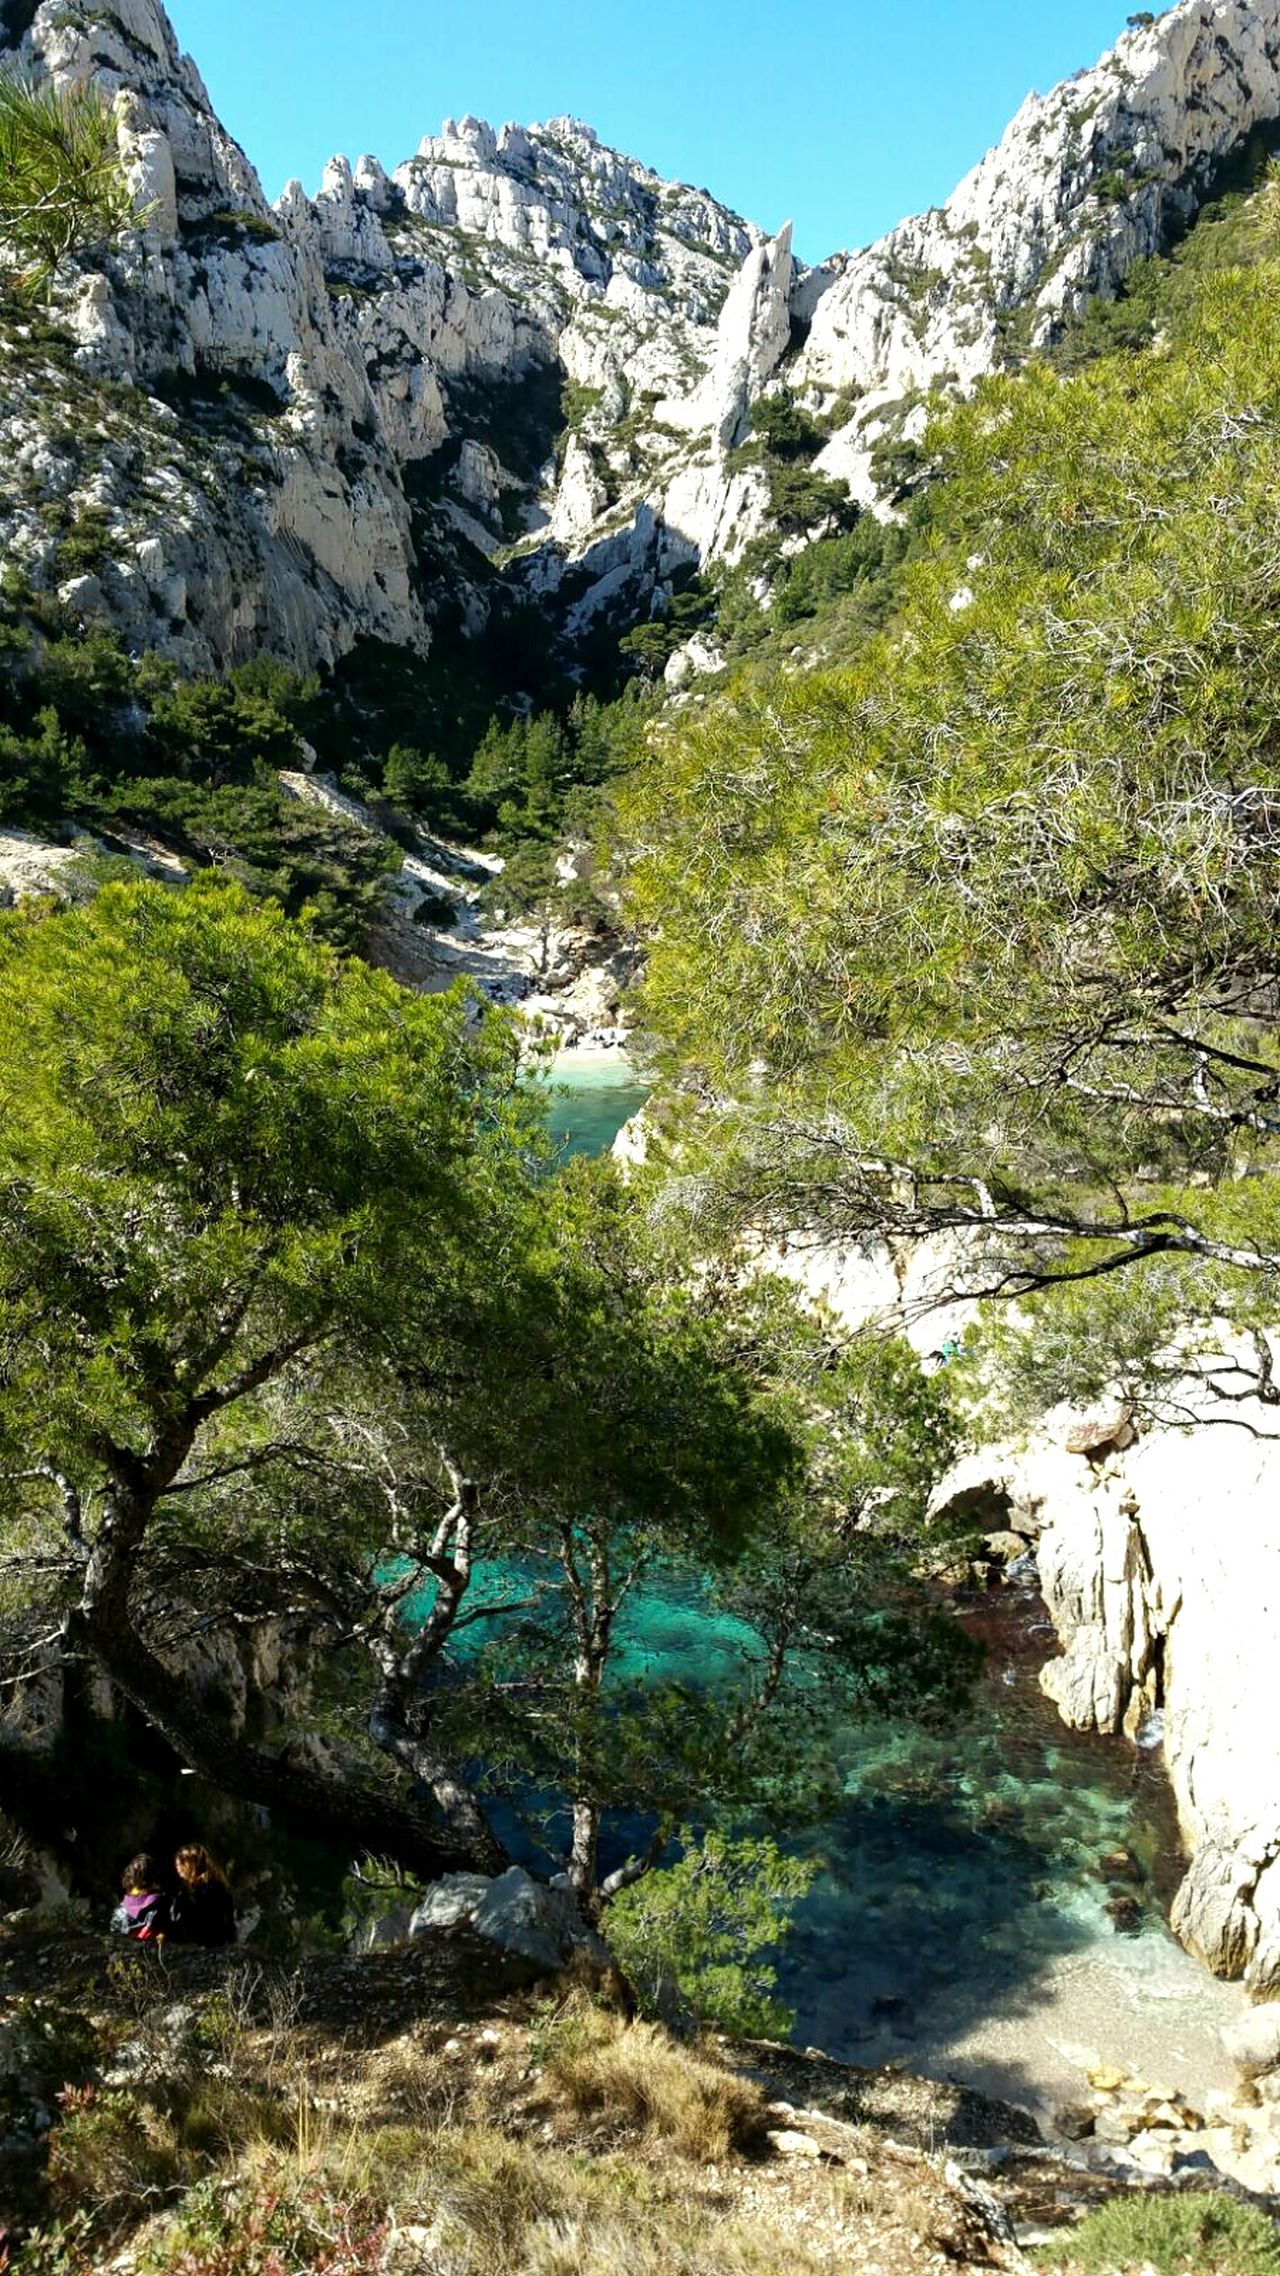 Tree Nature Outdoors Pin Parasol Blue Water Nature Beauty In Nature Calanques De Marseille Tranquility Tranquil Scene Landscape France No People Water Bouches Du Rhone PACA Marseillecartepostale Marseille Blue Mountain Sunlight Day Beauty In Nature Idyllic